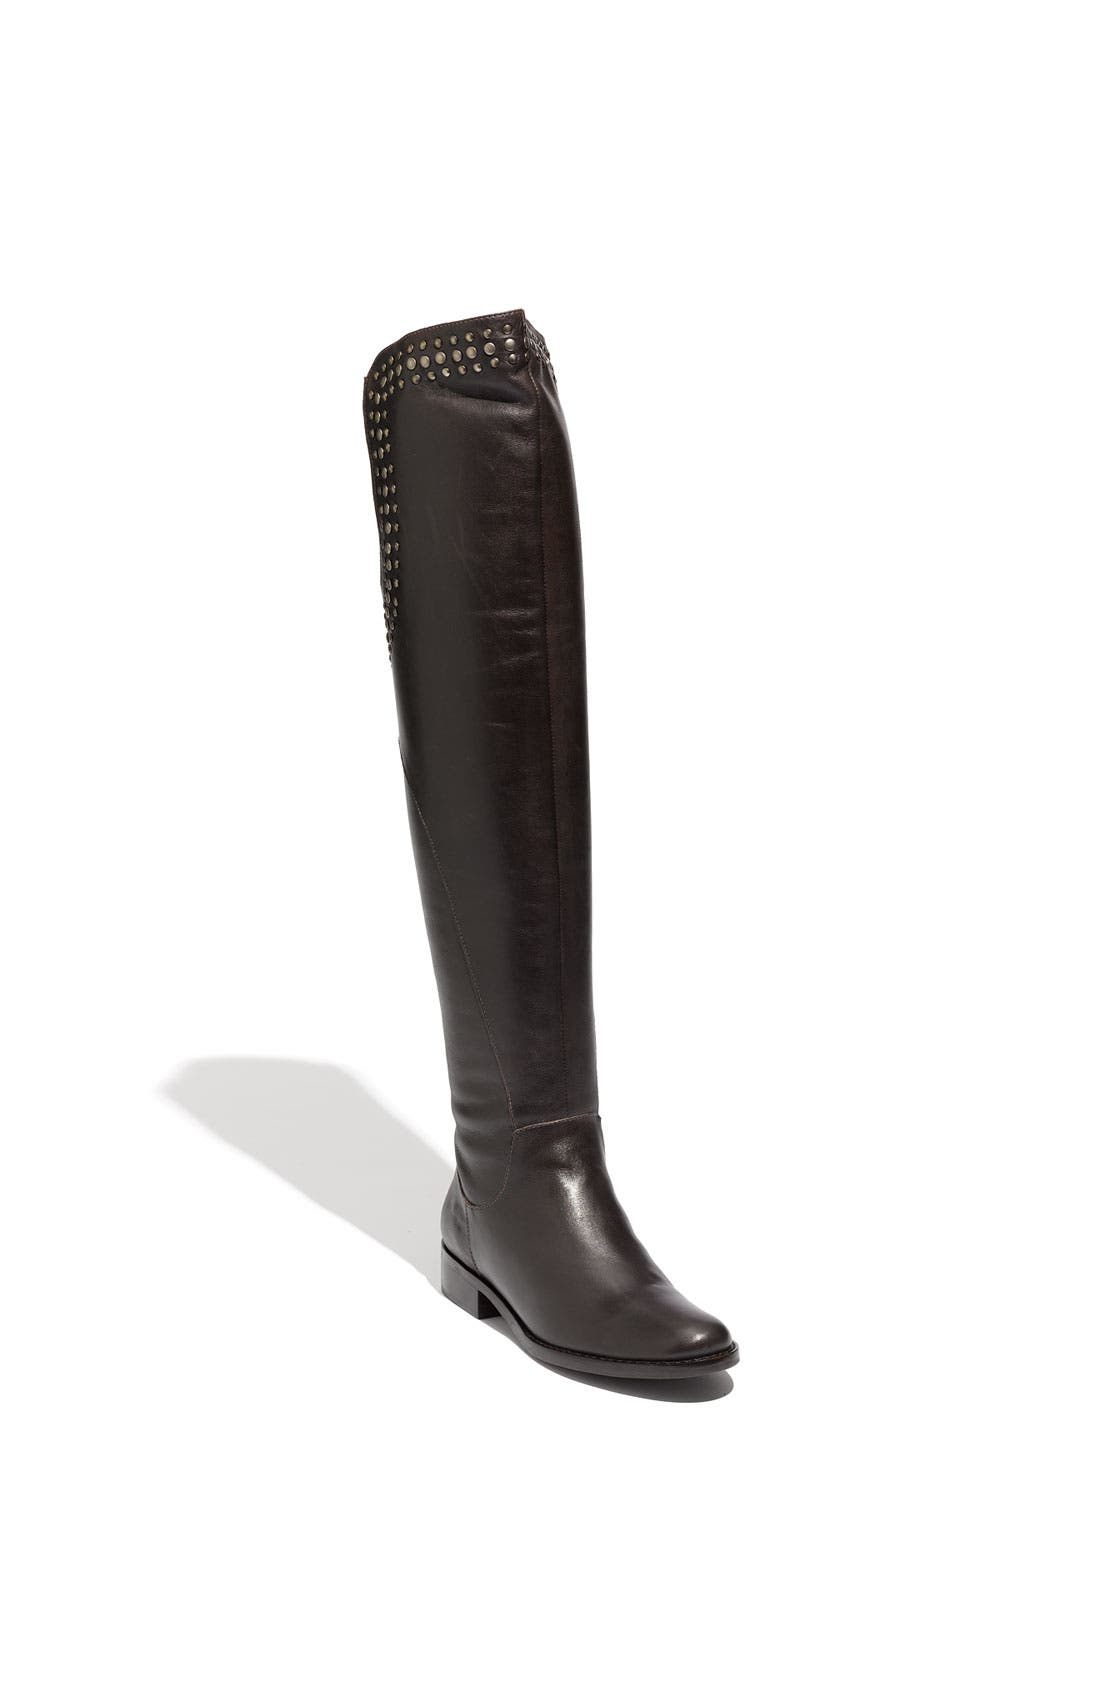 Alternate Image 1 Selected - Matisse 'Thunder' Over the Knee Boot